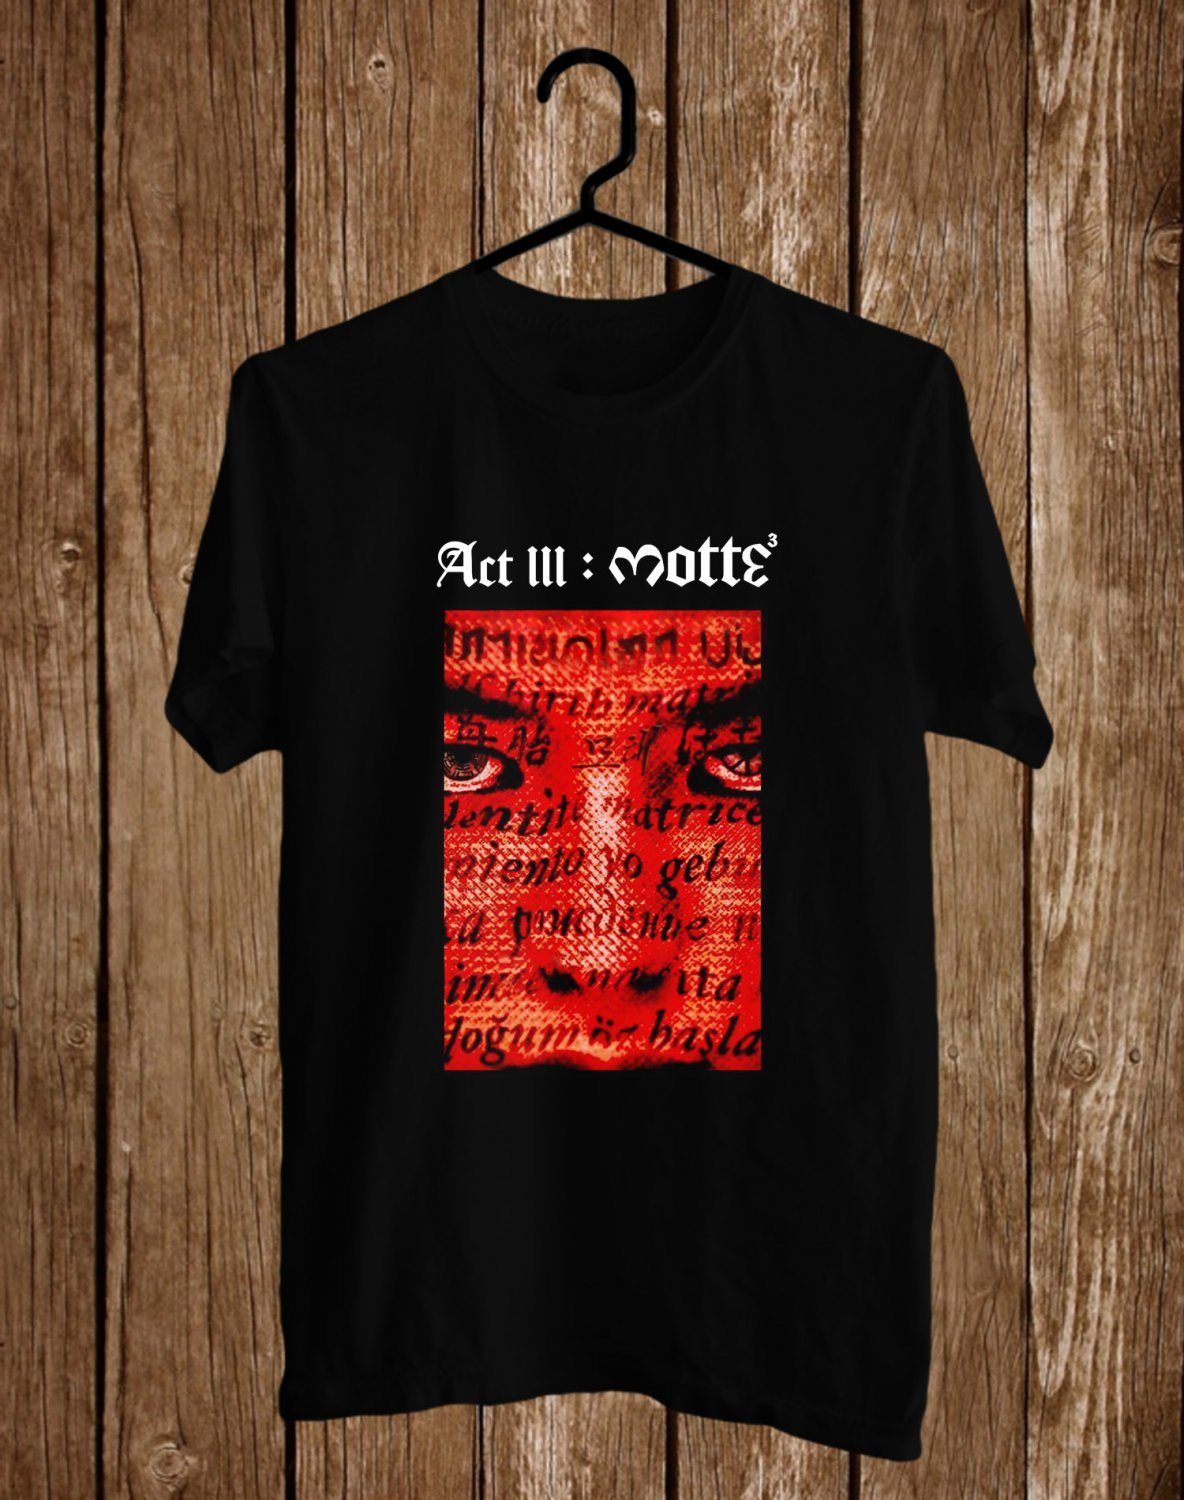 G-Dragon ACT III MOTTE WORLD TOUR 2017 Black Tee's Front Side by Complexart